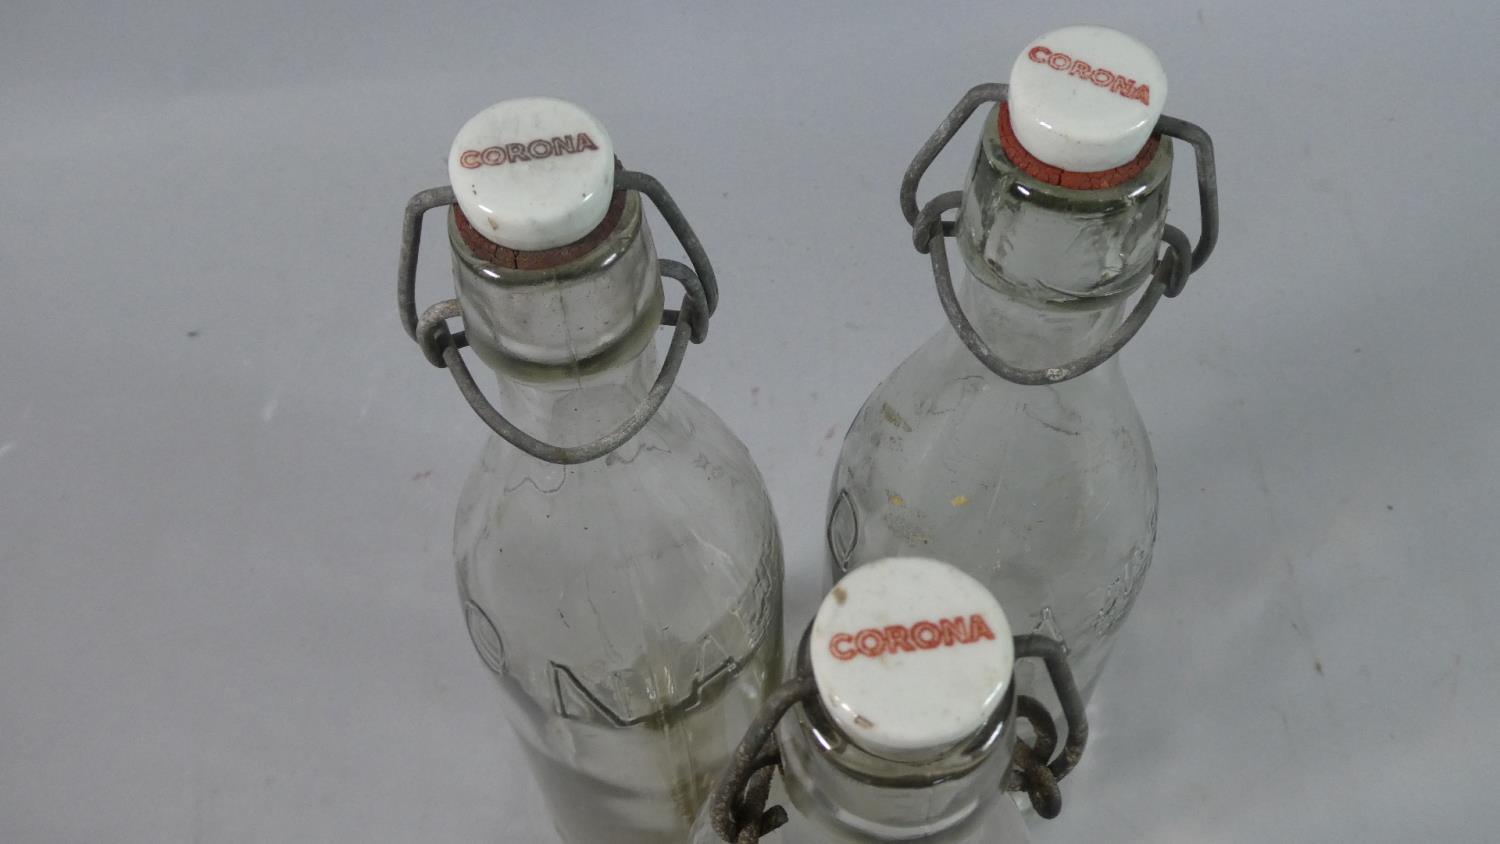 Lot 143 - A Collection of Three Vintage Corona Glass Lemonade Bottles, Each 32cm high